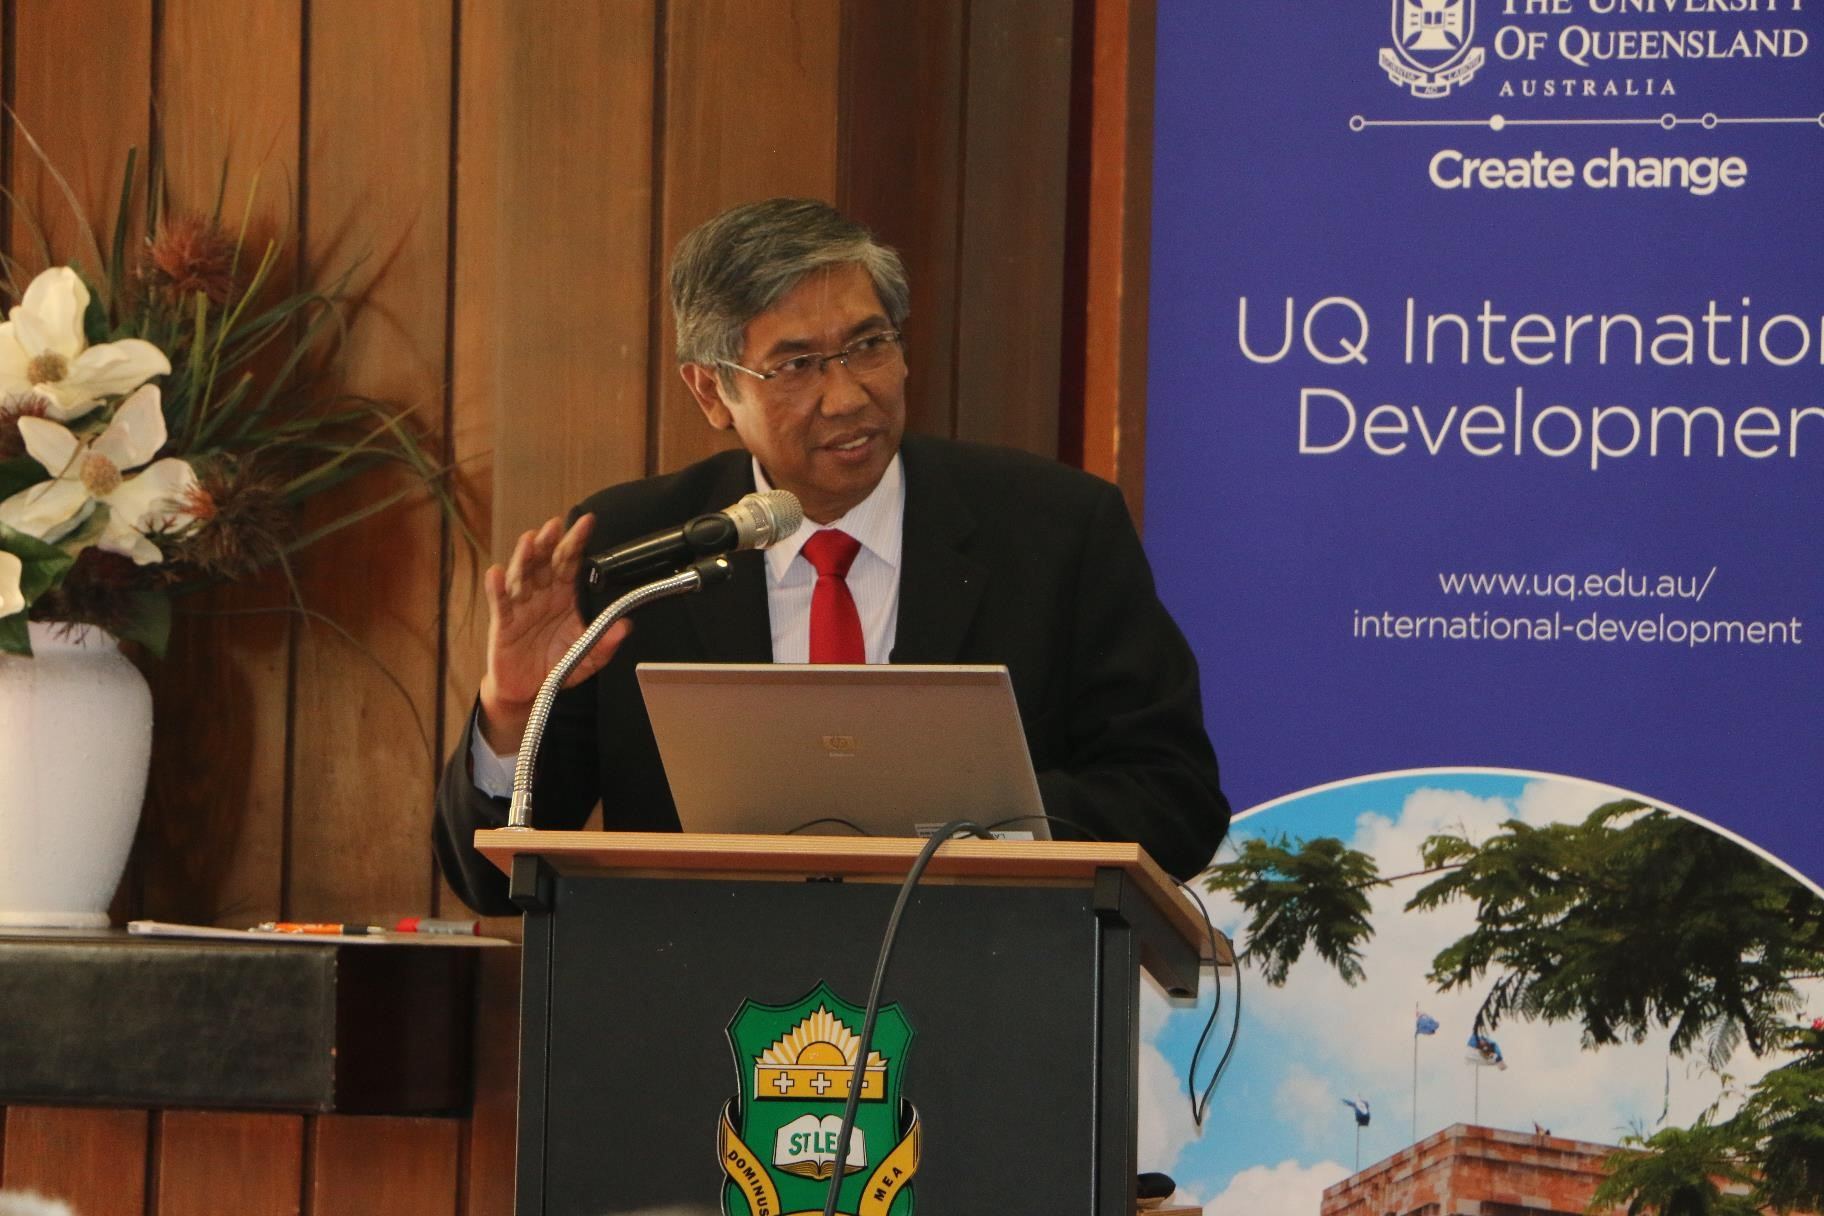 Vice Finance Minister Republic of Indonesia Professor Mardiasmo encourages participants of Strengthening the Public Policy Making Process short course to maximise their learning opportunities at UQ.